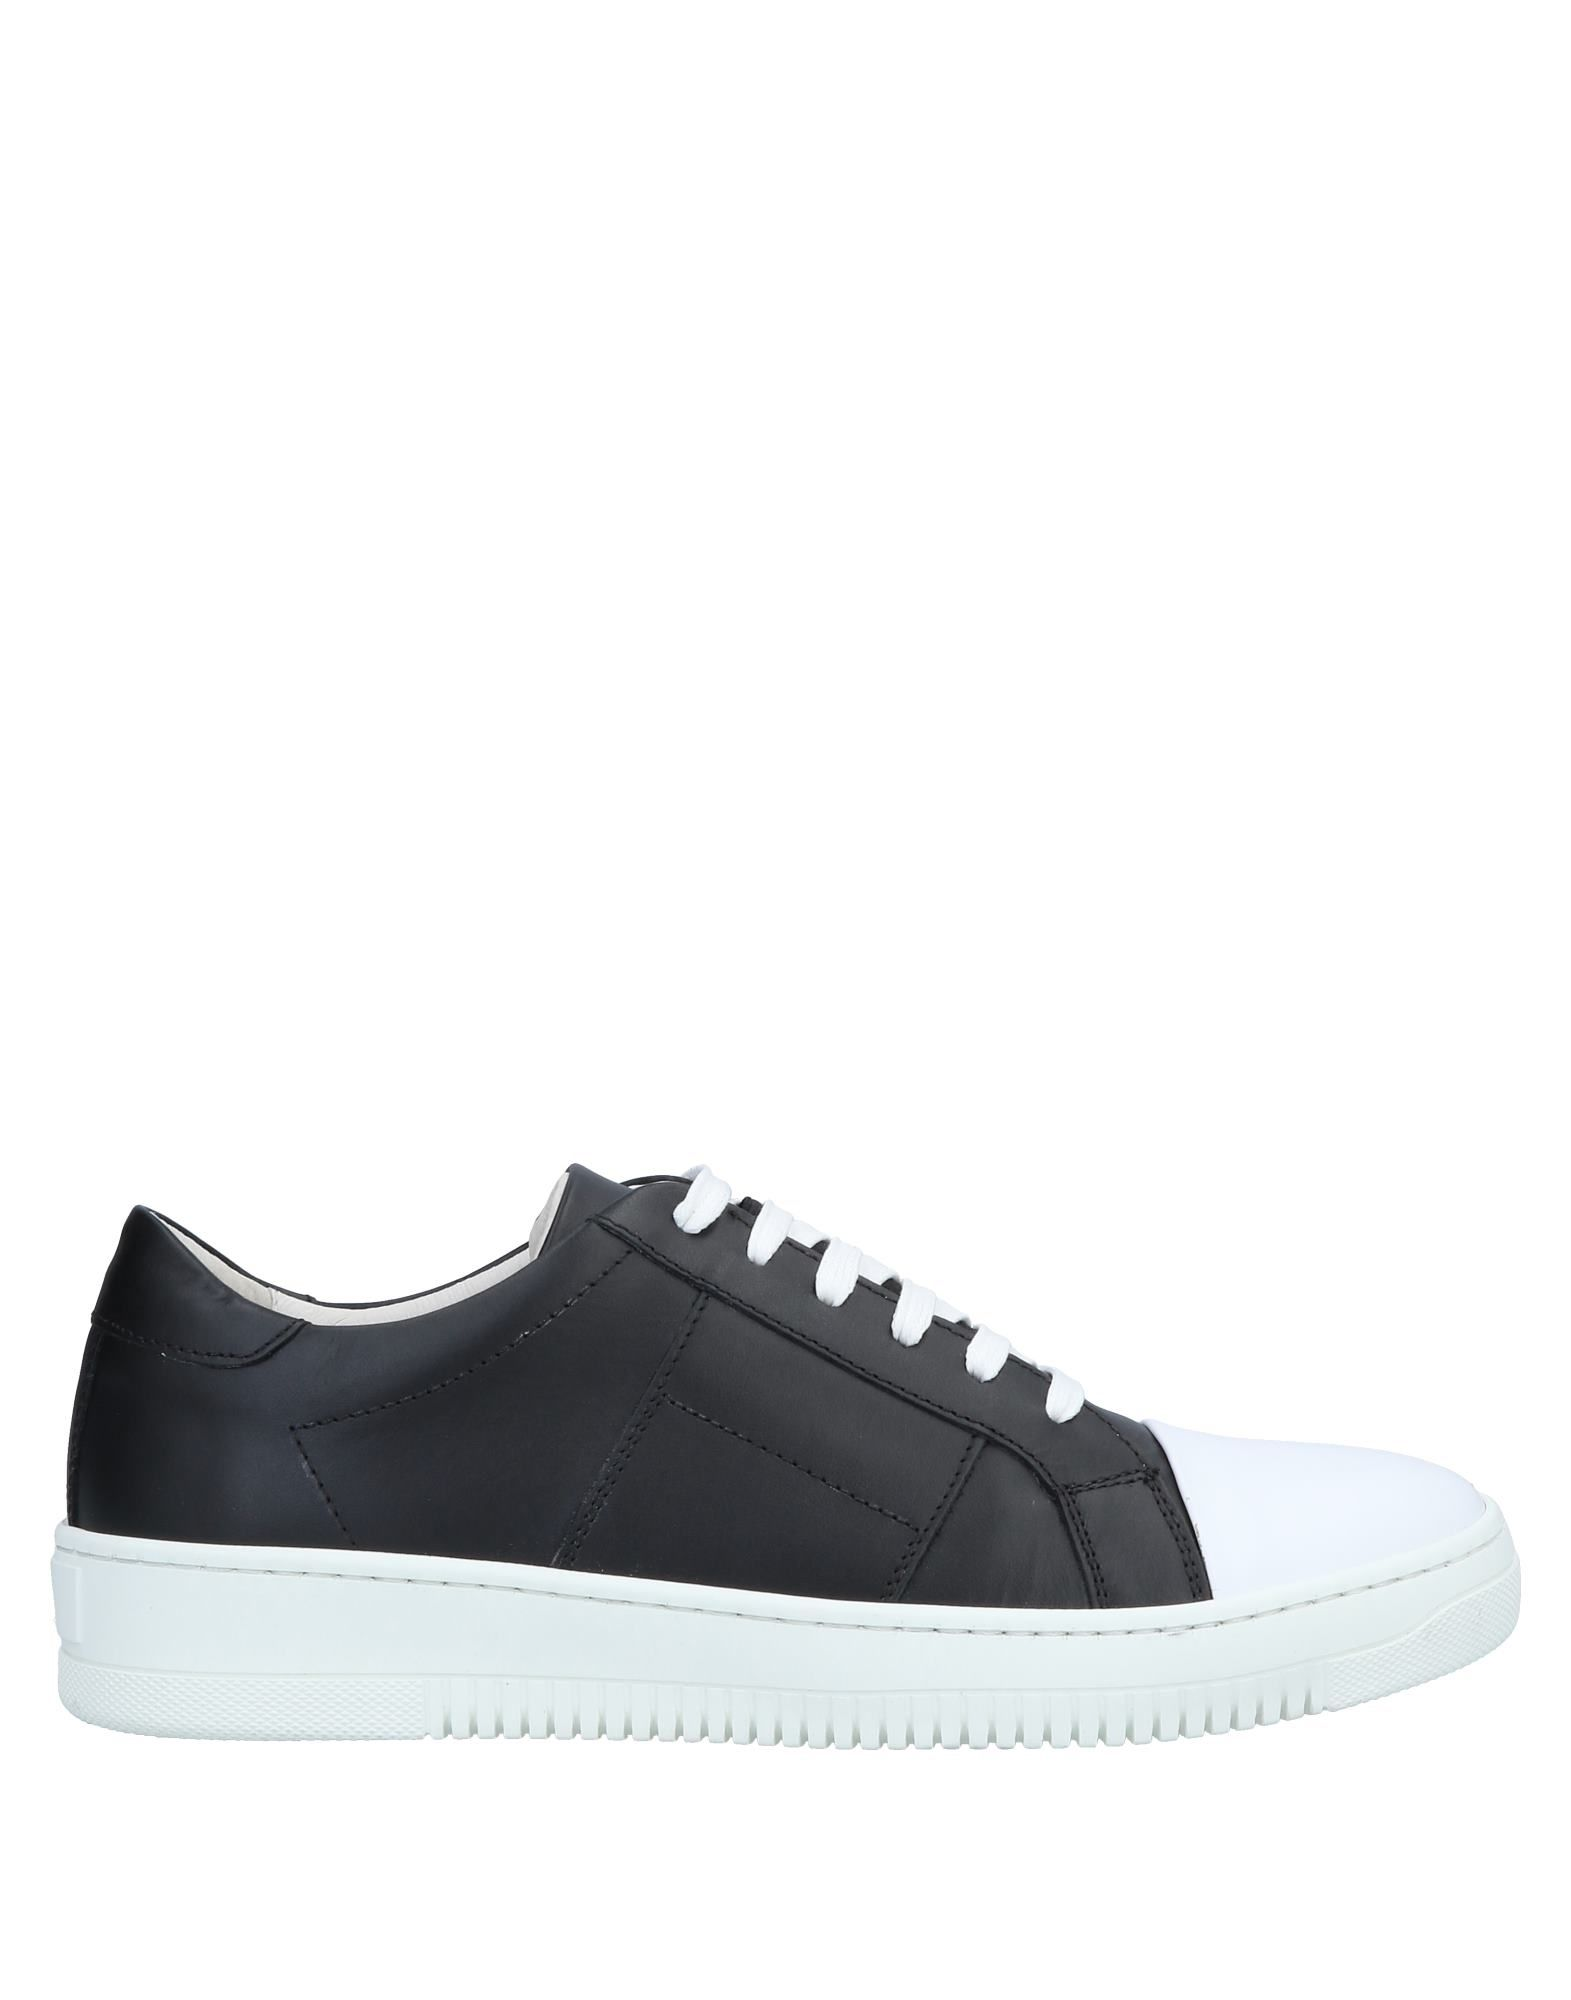 Patrizia on Pepe Sneakers - Men Patrizia Pepe Sneakers online on Patrizia  Australia - 11564731PF 6902c5